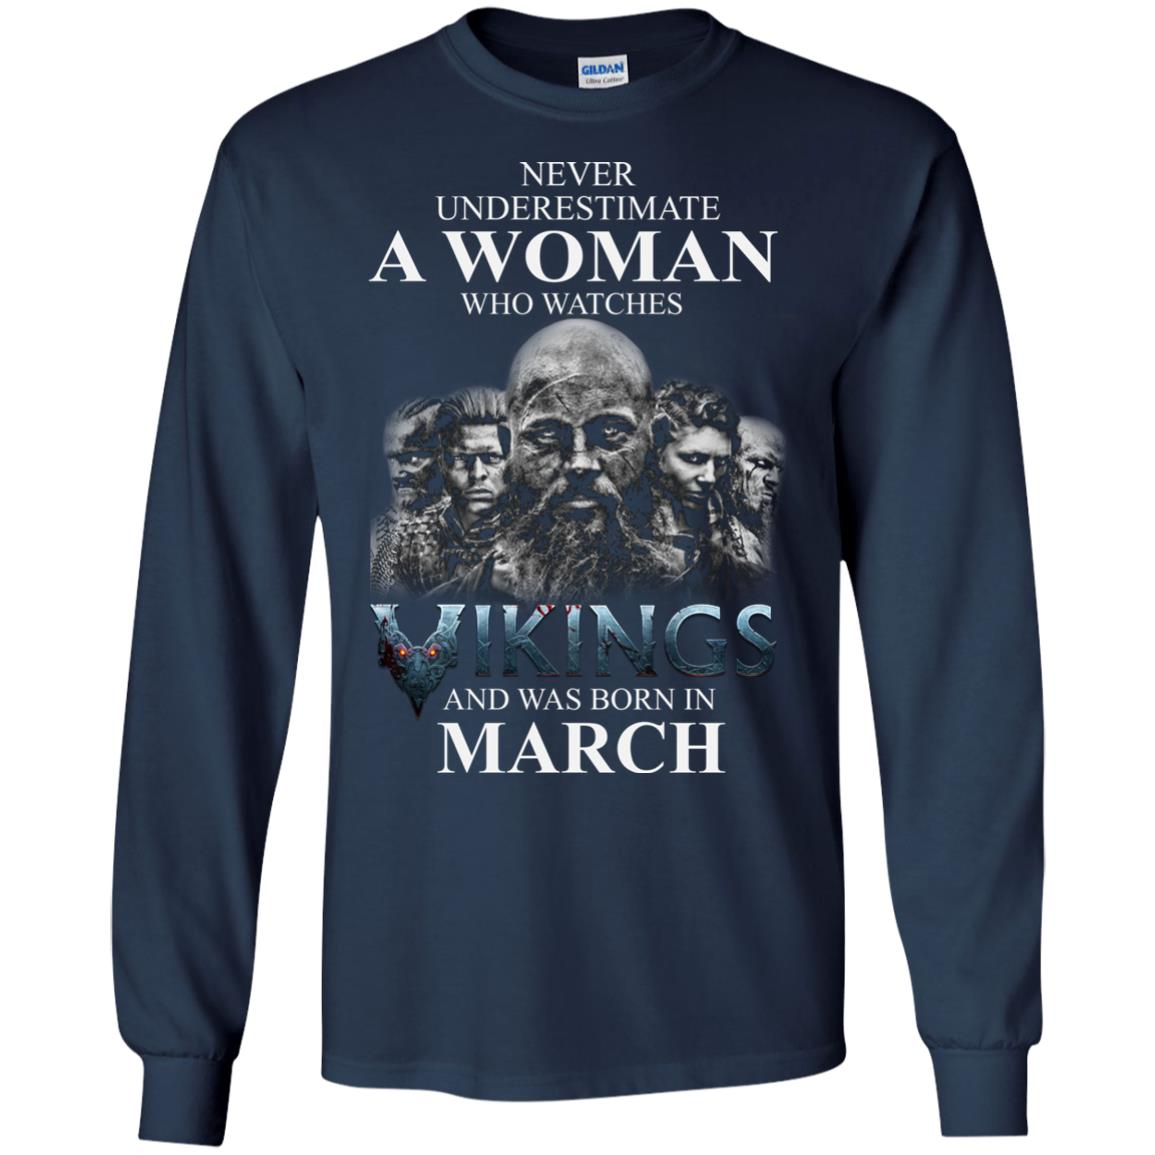 image 1330 - Never Underestimate A woman who watches Vikings and was born in March shirt